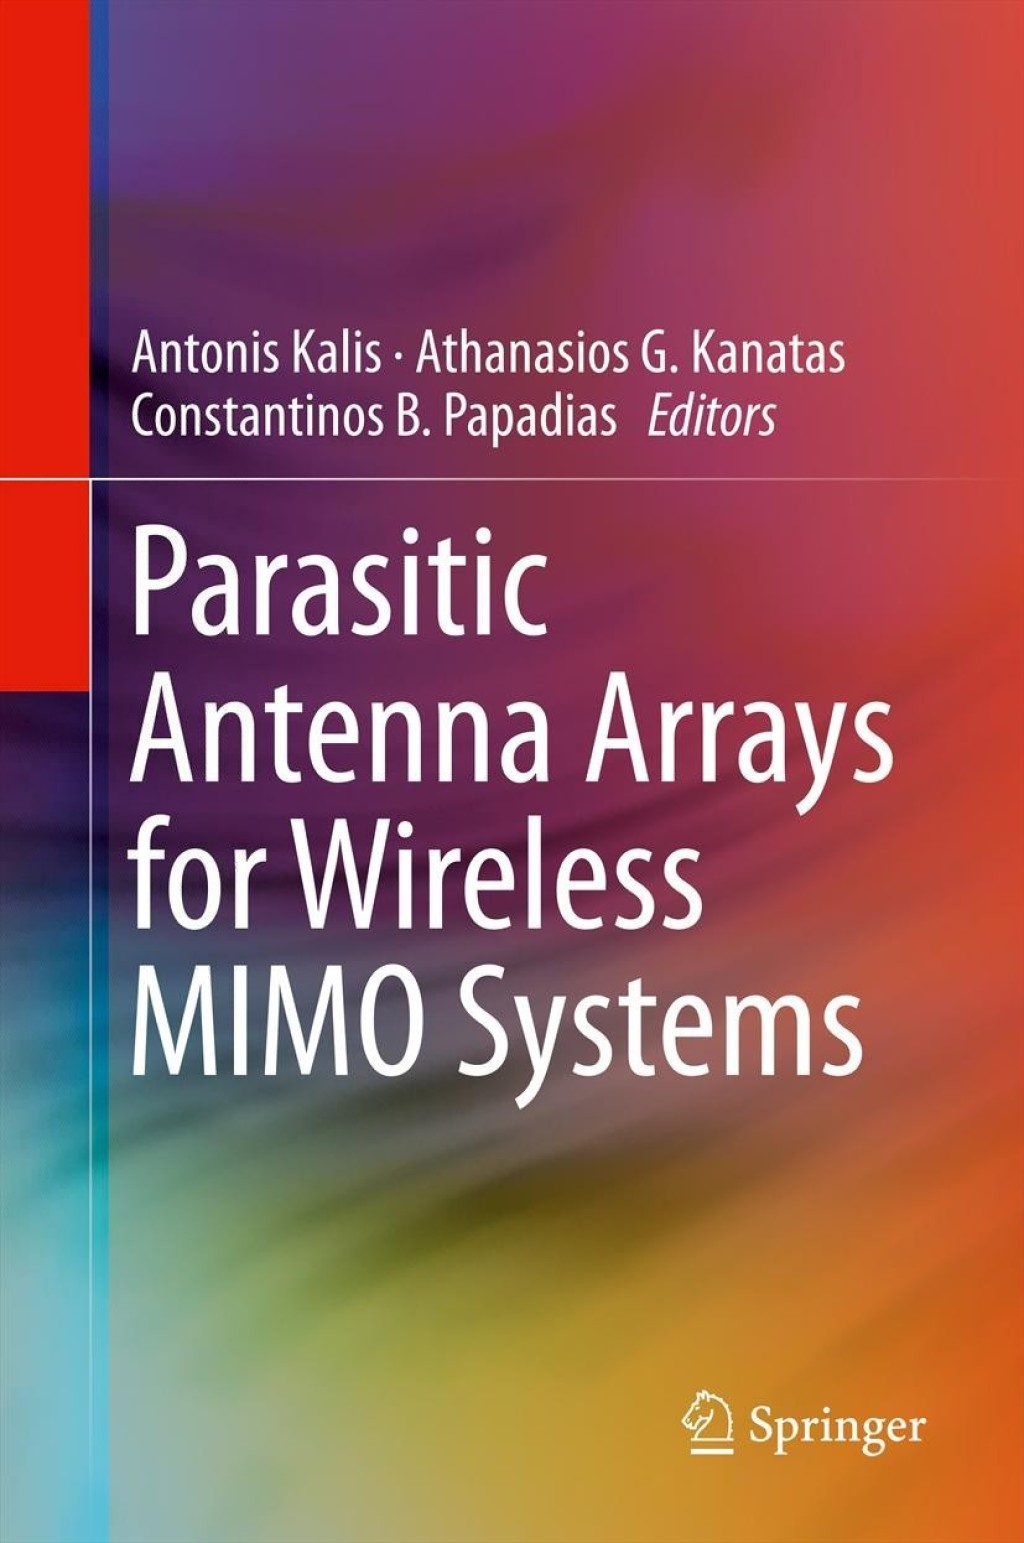 Parasitic Antenna Arrays for Wireless MIMO Systems (eBook) (9781461479994) photo